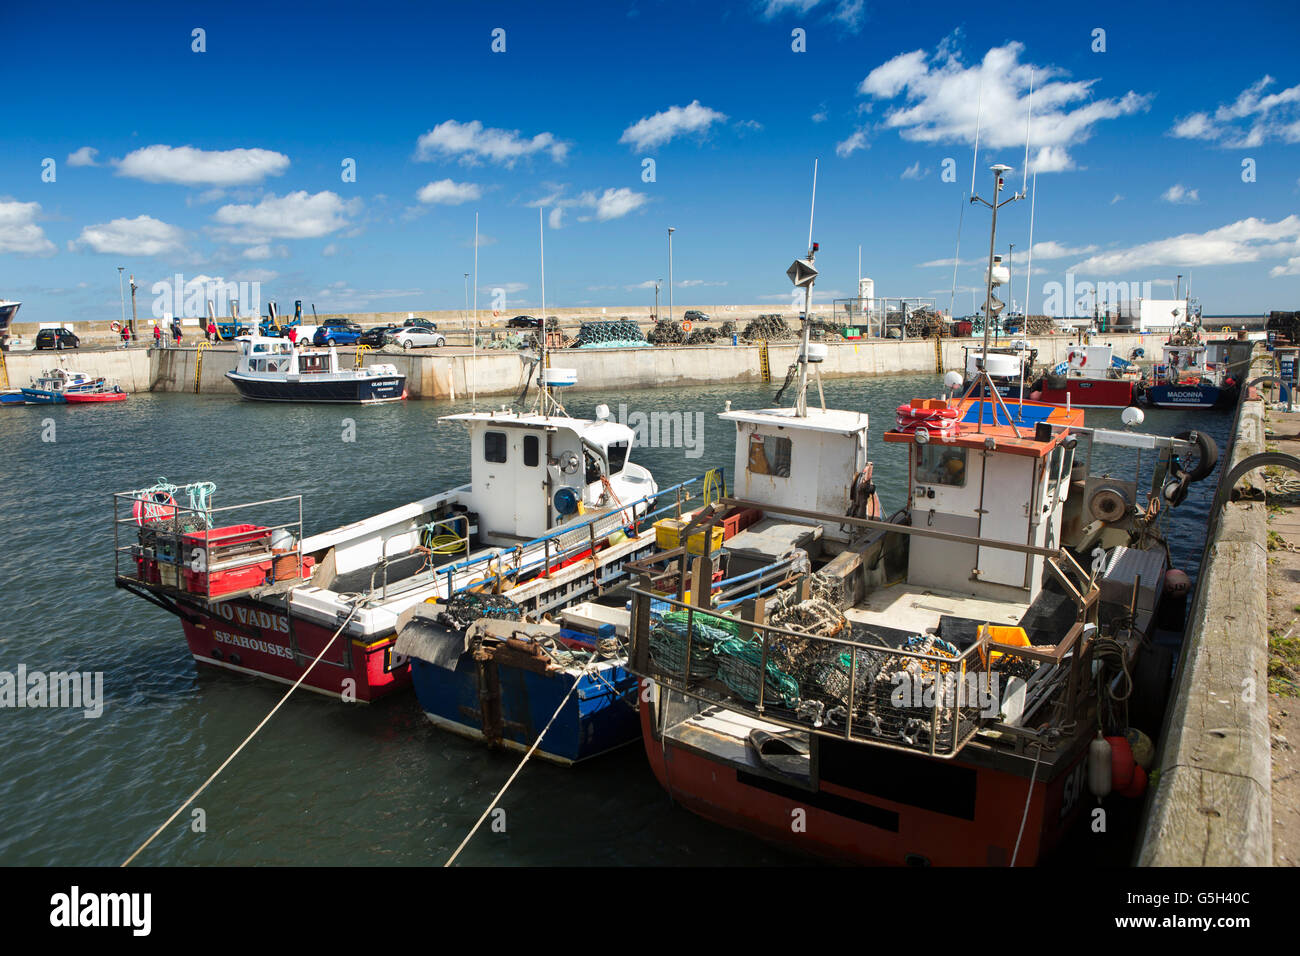 UK, England Northumberland, Seahouses Harbour, fishing and day trip craft at quayside - Stock Image